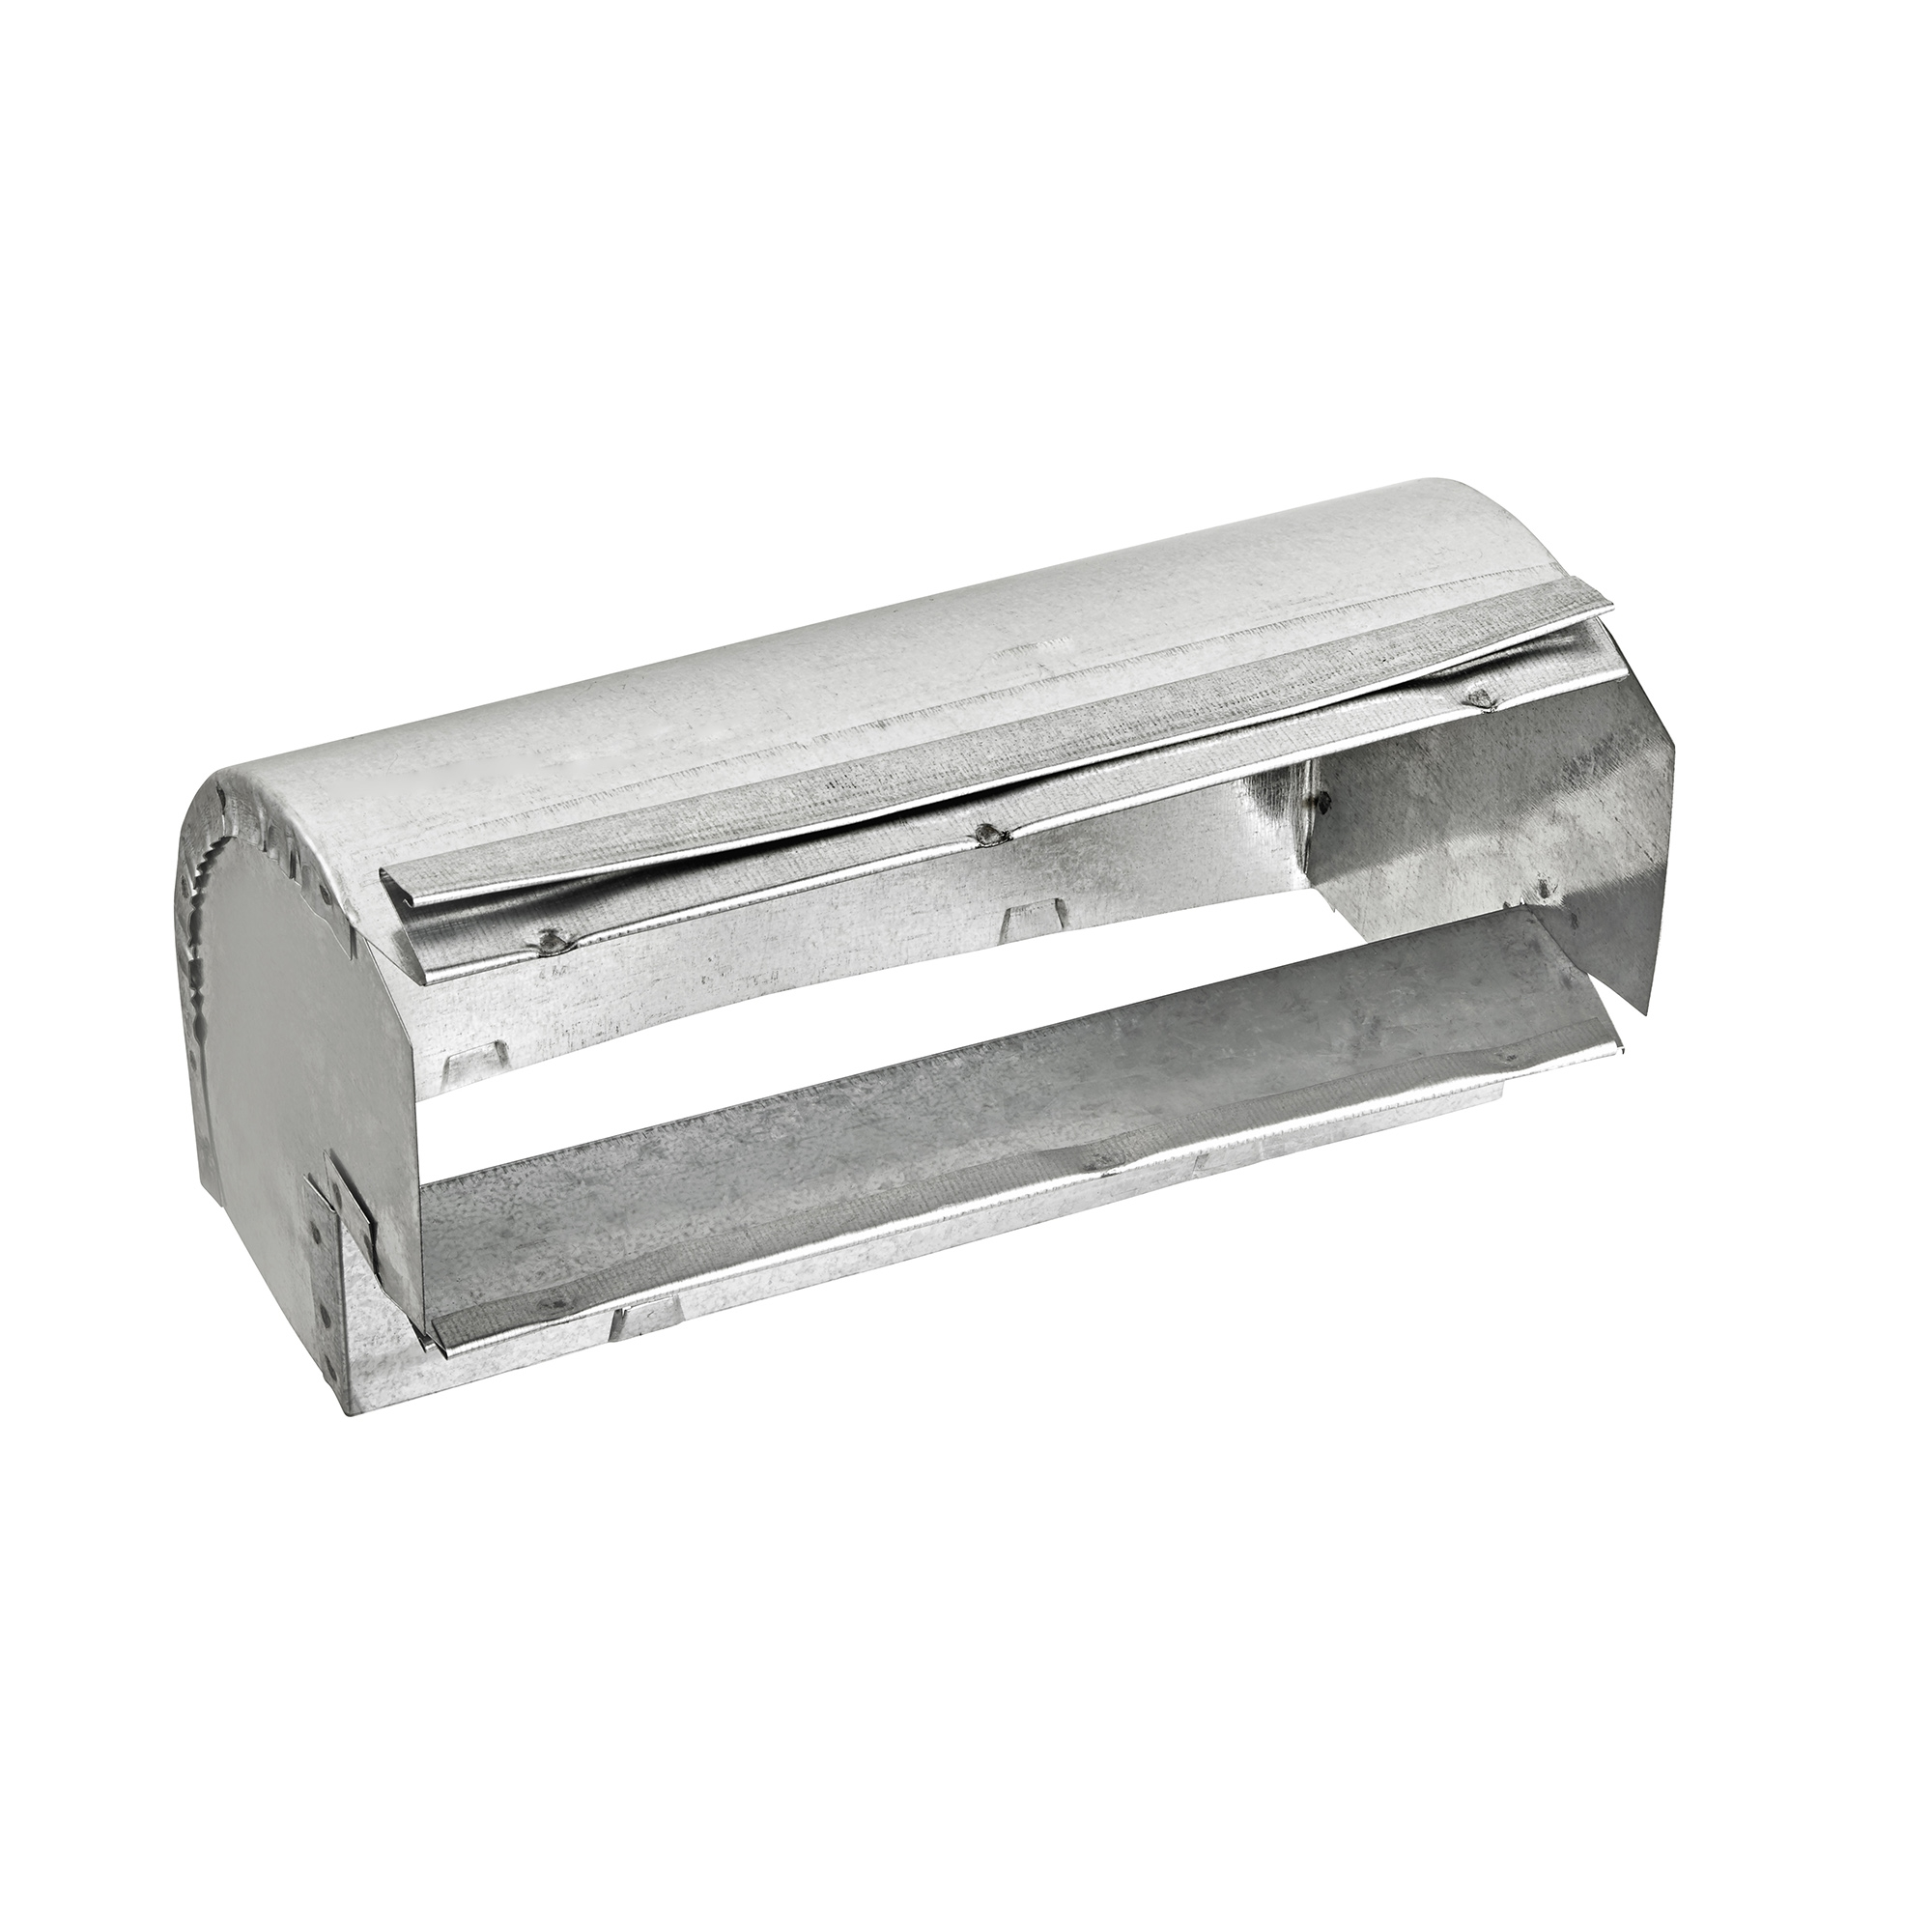 Picture of Lambro 102 Range Hood Elbow, Aluminum, For: 10 x 3-1/4 in Hoods